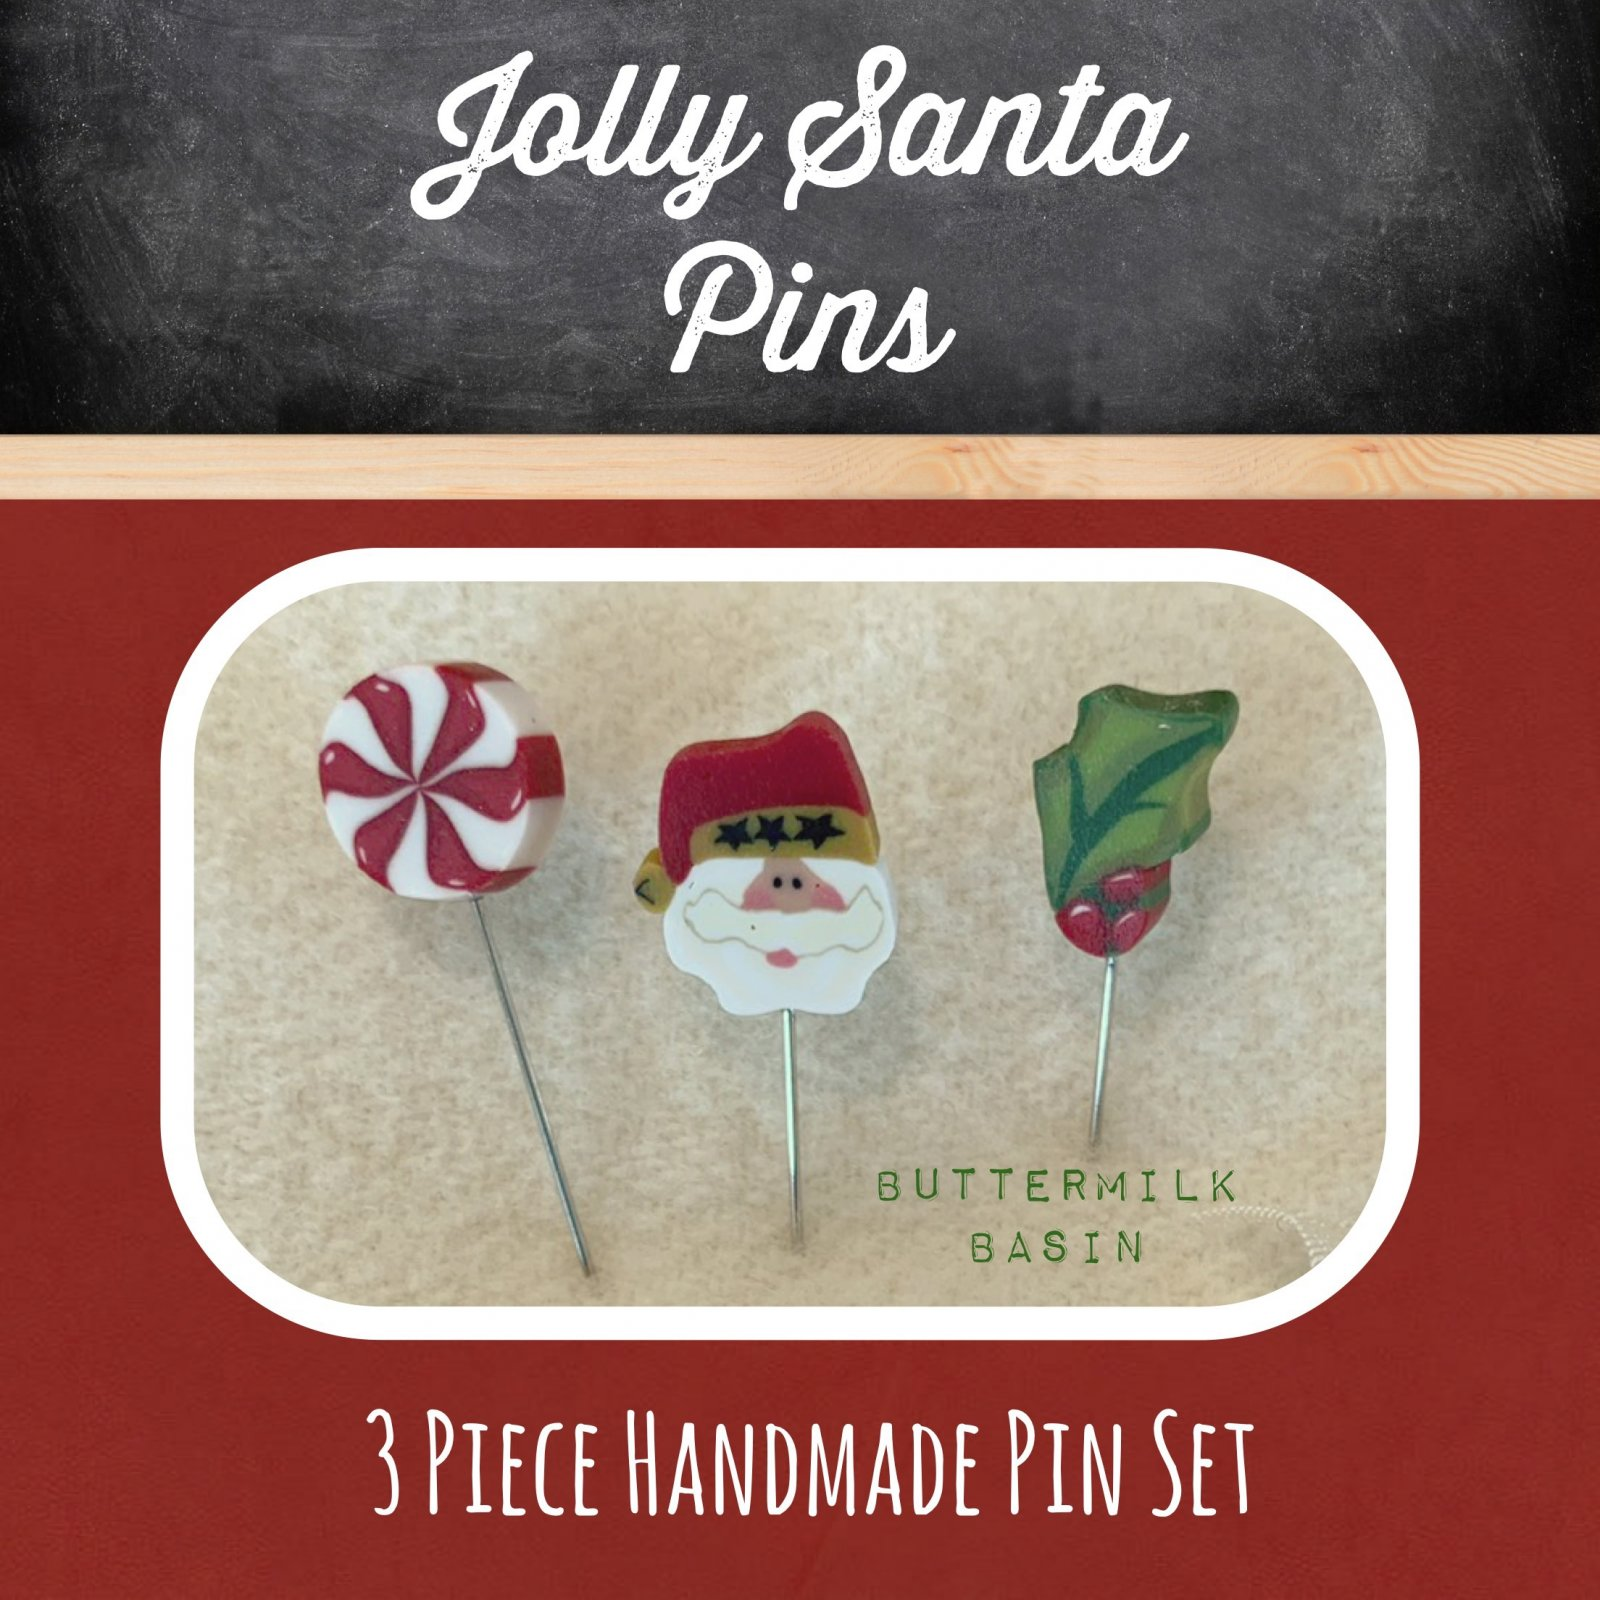 Jolly Santa Pins